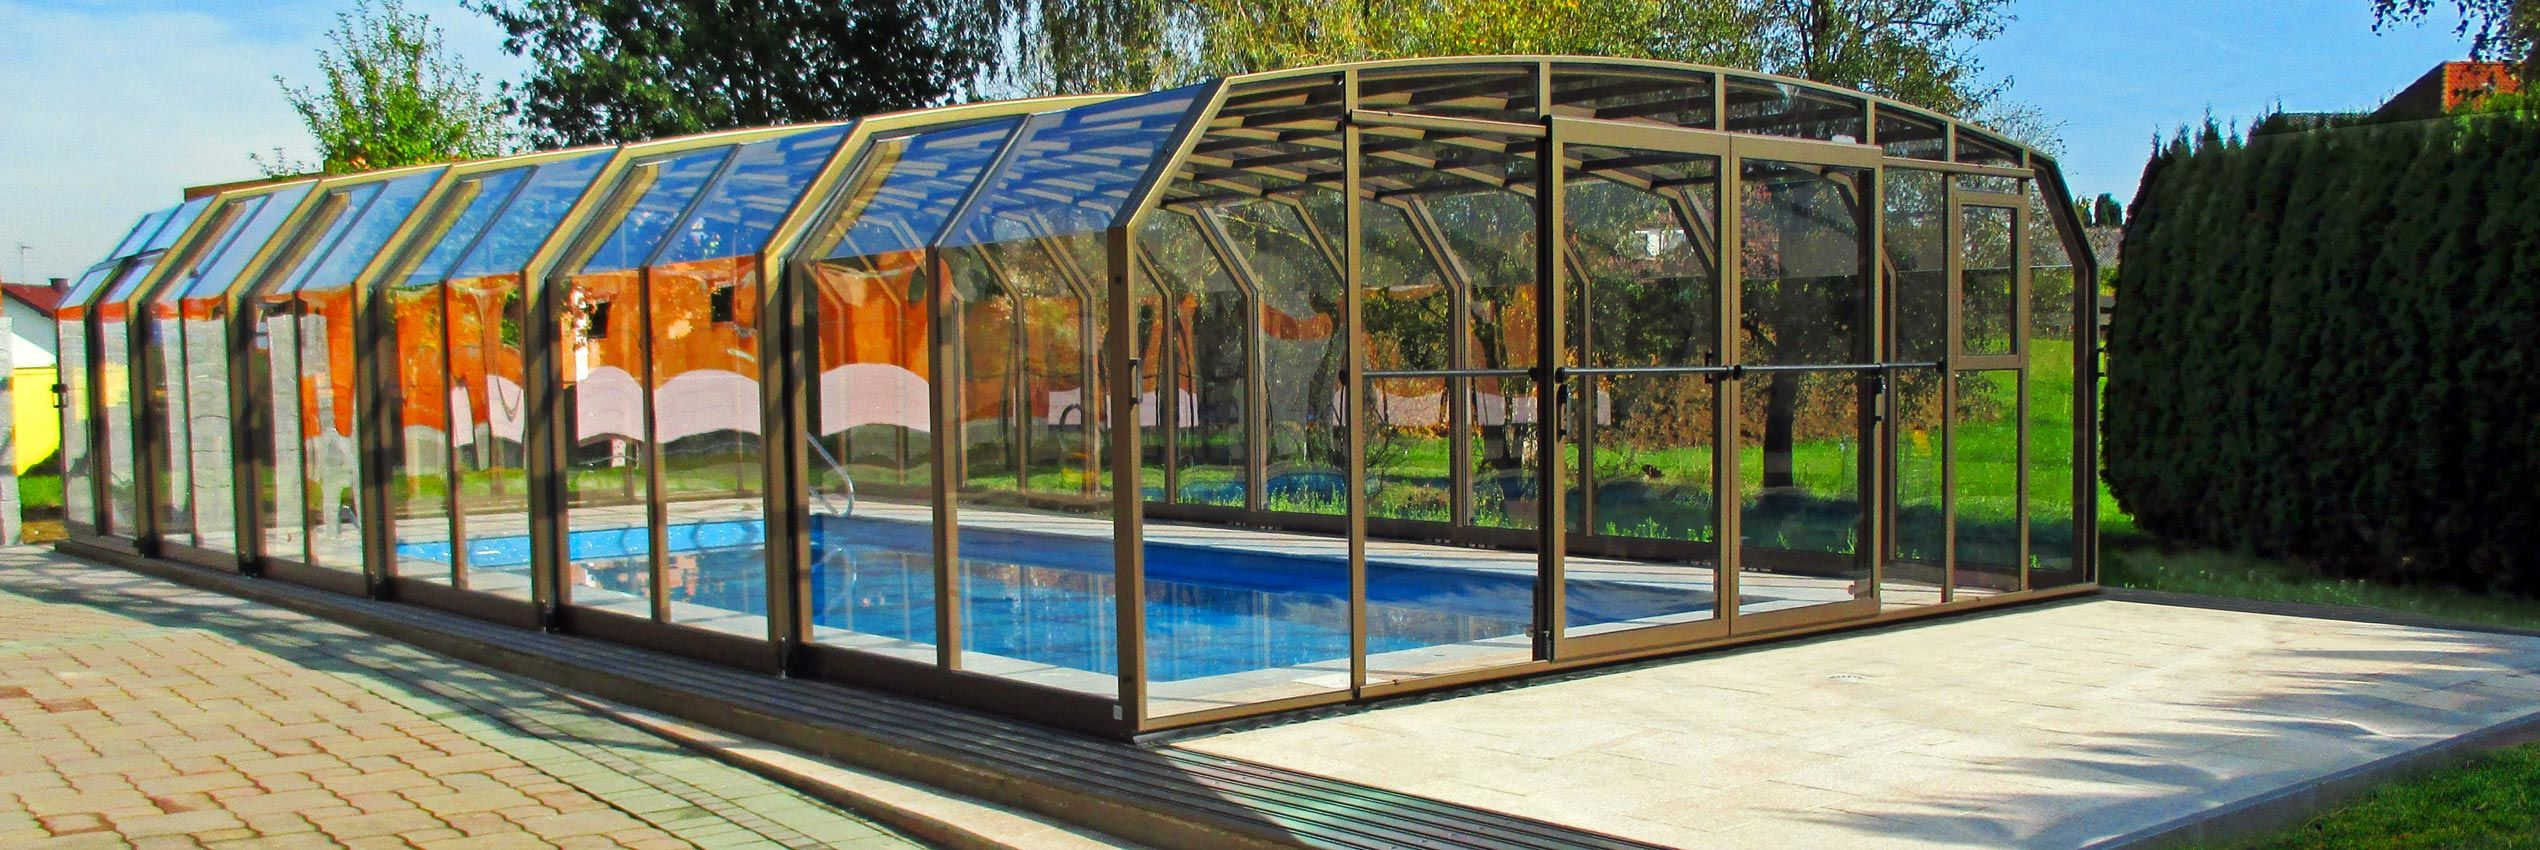 Closed Retractable Swimming Pool Enclosure Laguna Fully Closed Retractable  Swimming Pool Enclosure Oceanic High ...